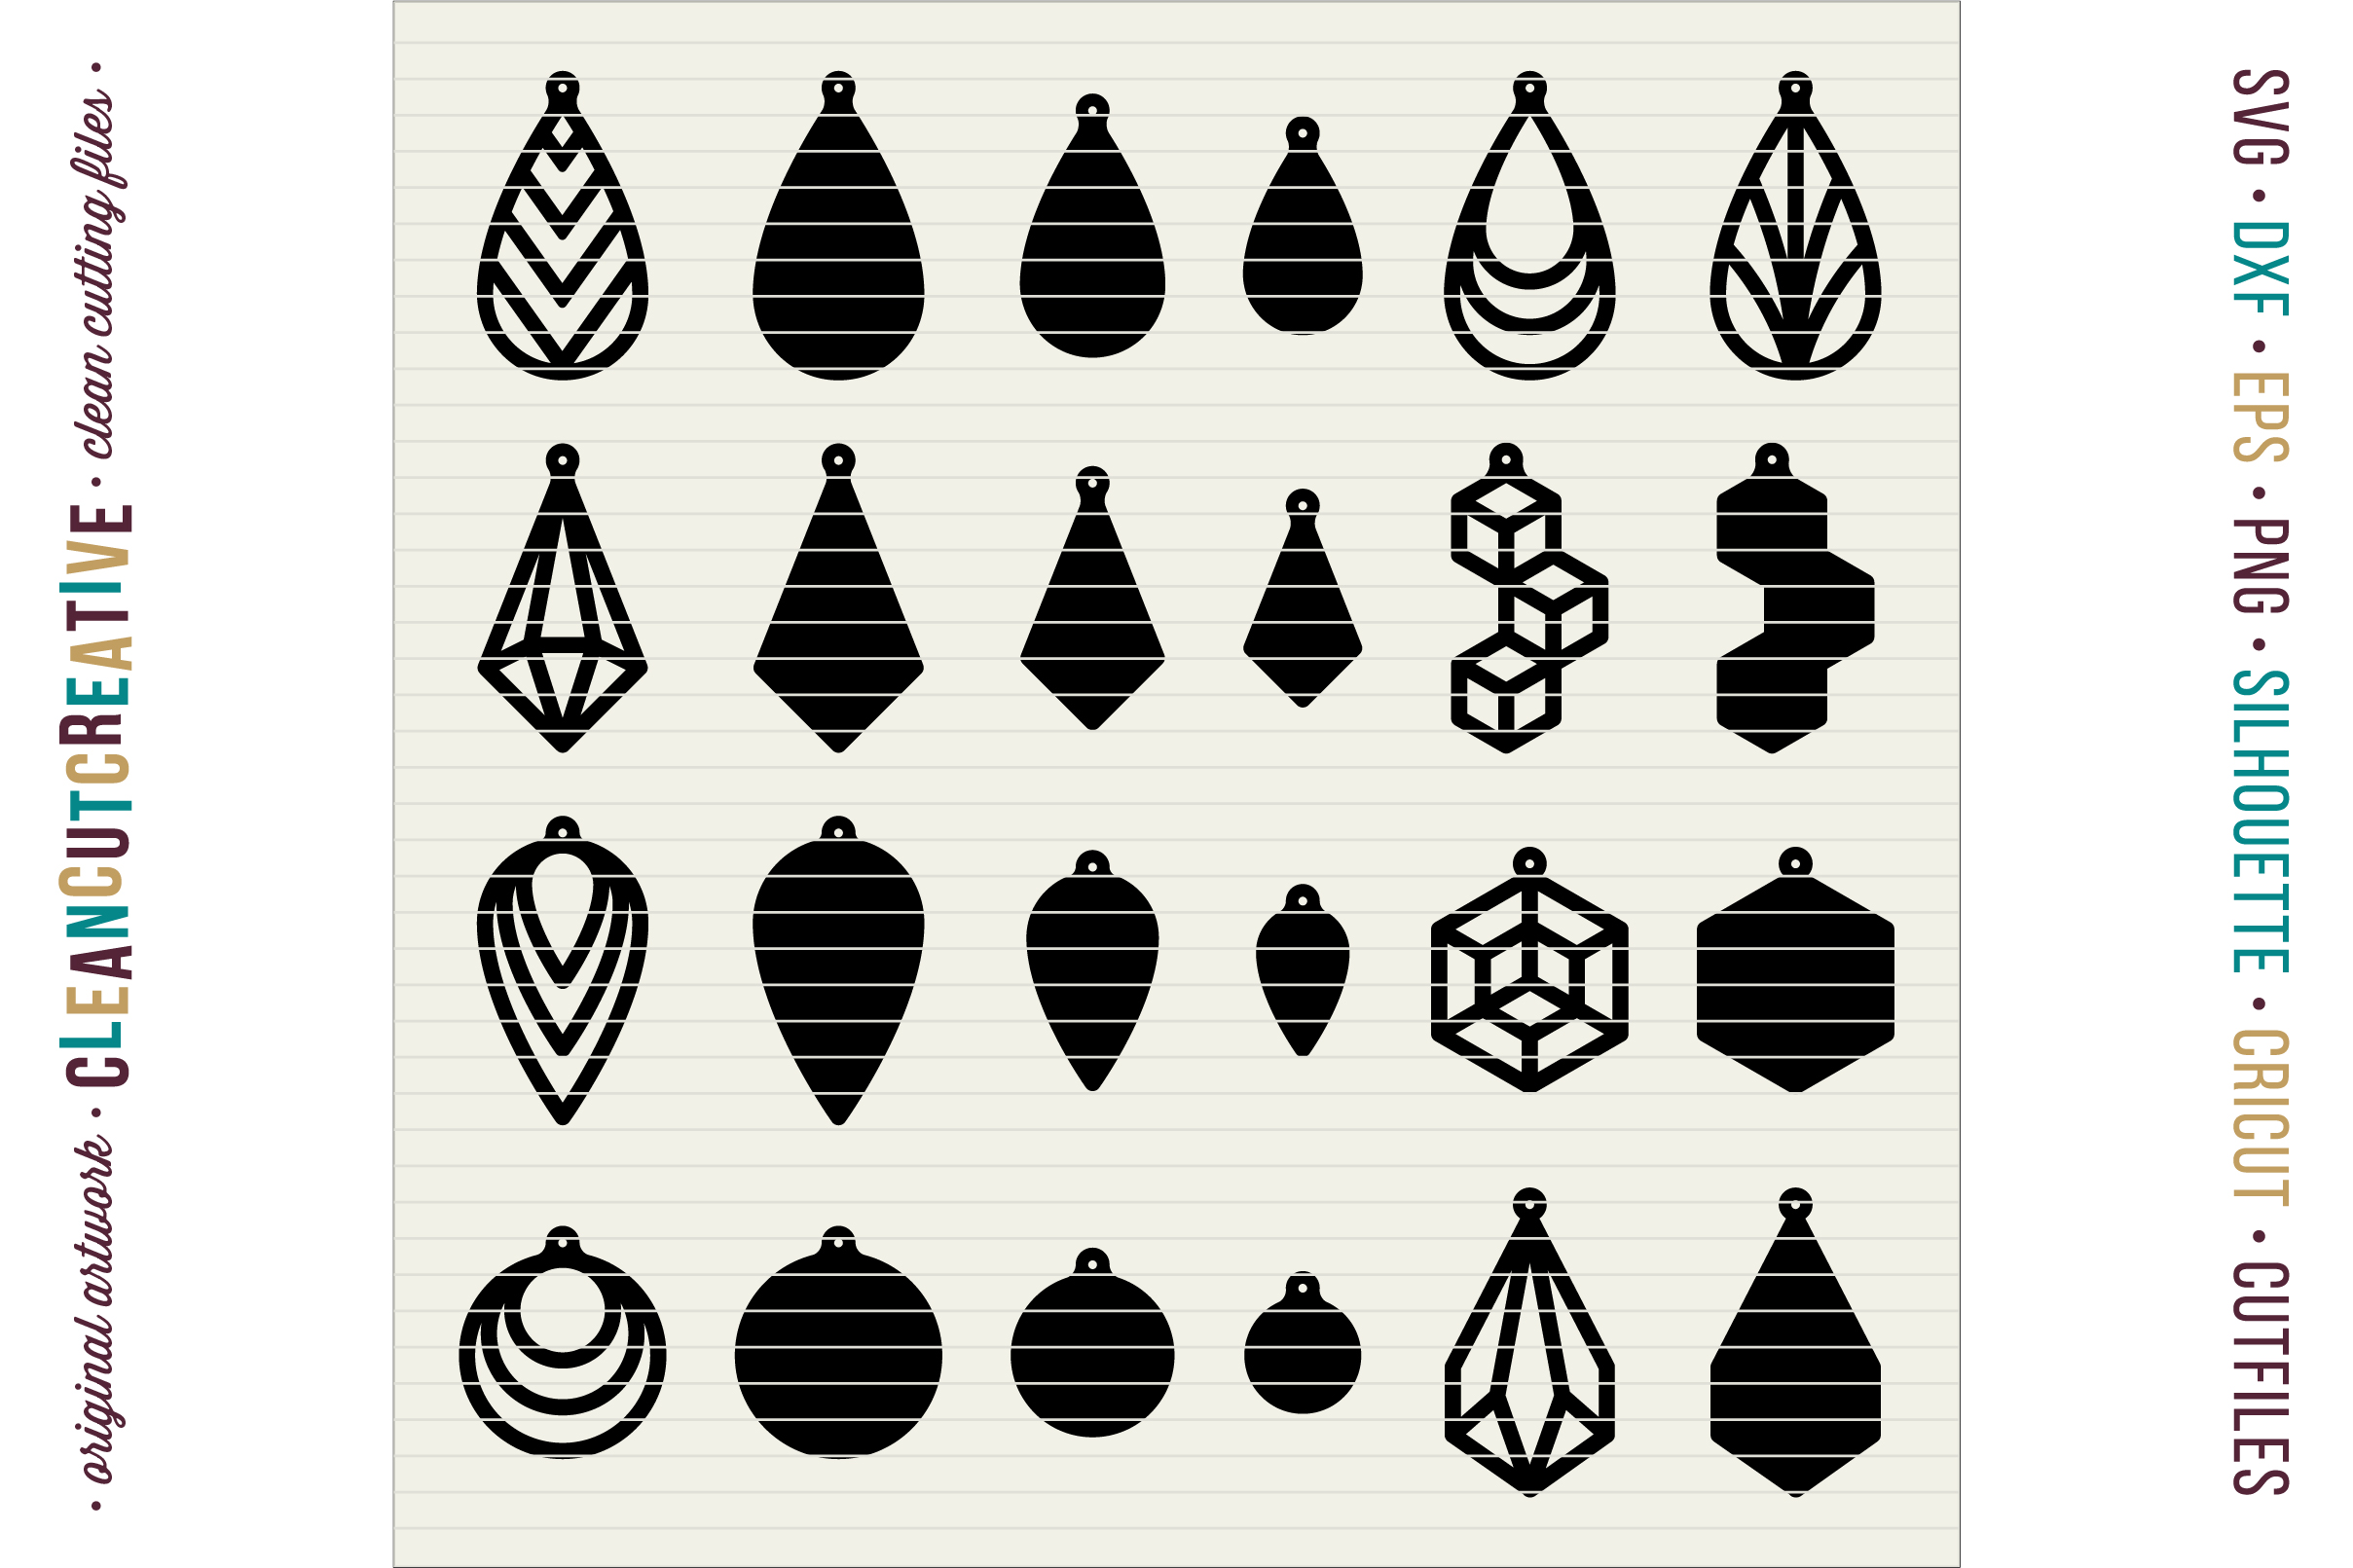 Set of 24 Faux Leather Earrings - SVG DXF EPS PNG craft file example image 2